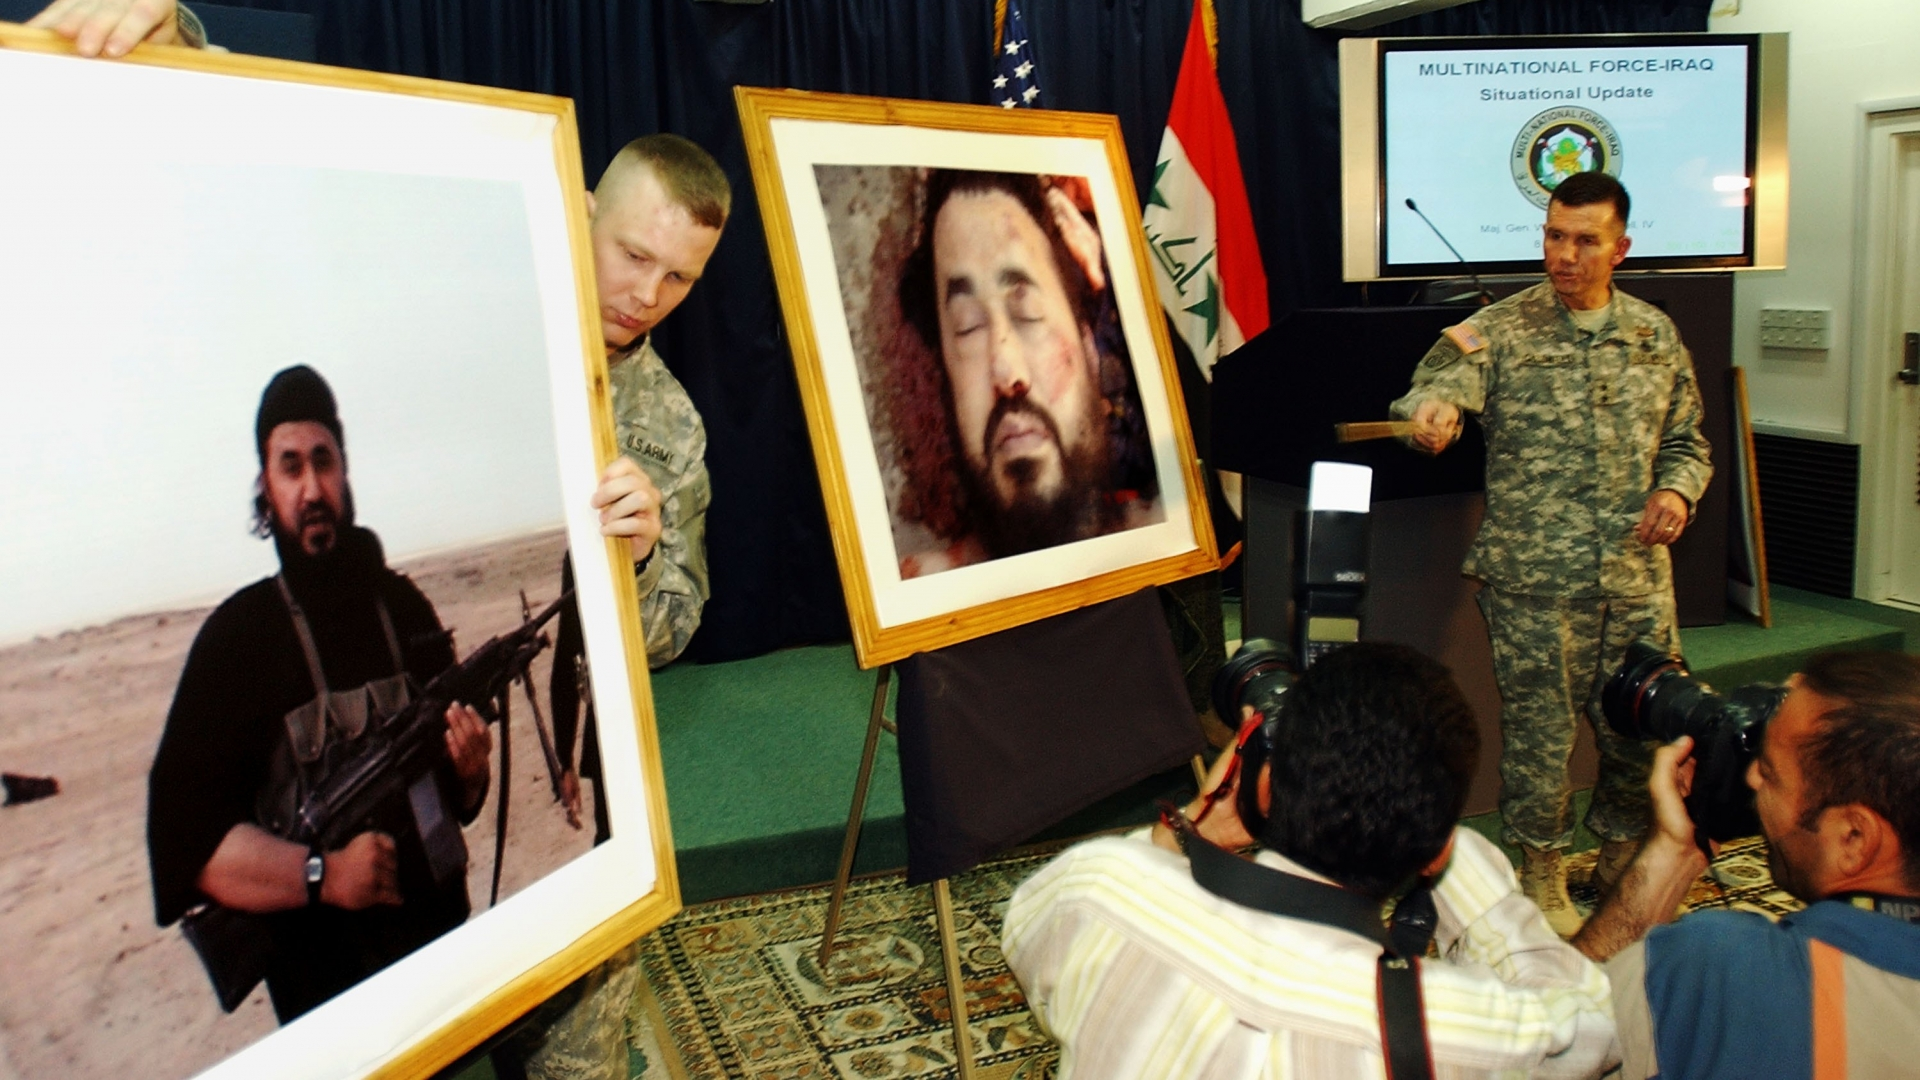 A press conference announcing the death of Abu Musab al-Zarqawi, the leader of al-Qaeda in Iraq. Former CIA tracker Nada Bakos was an instrumental member of the team that found the notorious terrorist. (Credit: Wathiq Khuzaie/Getty Images).